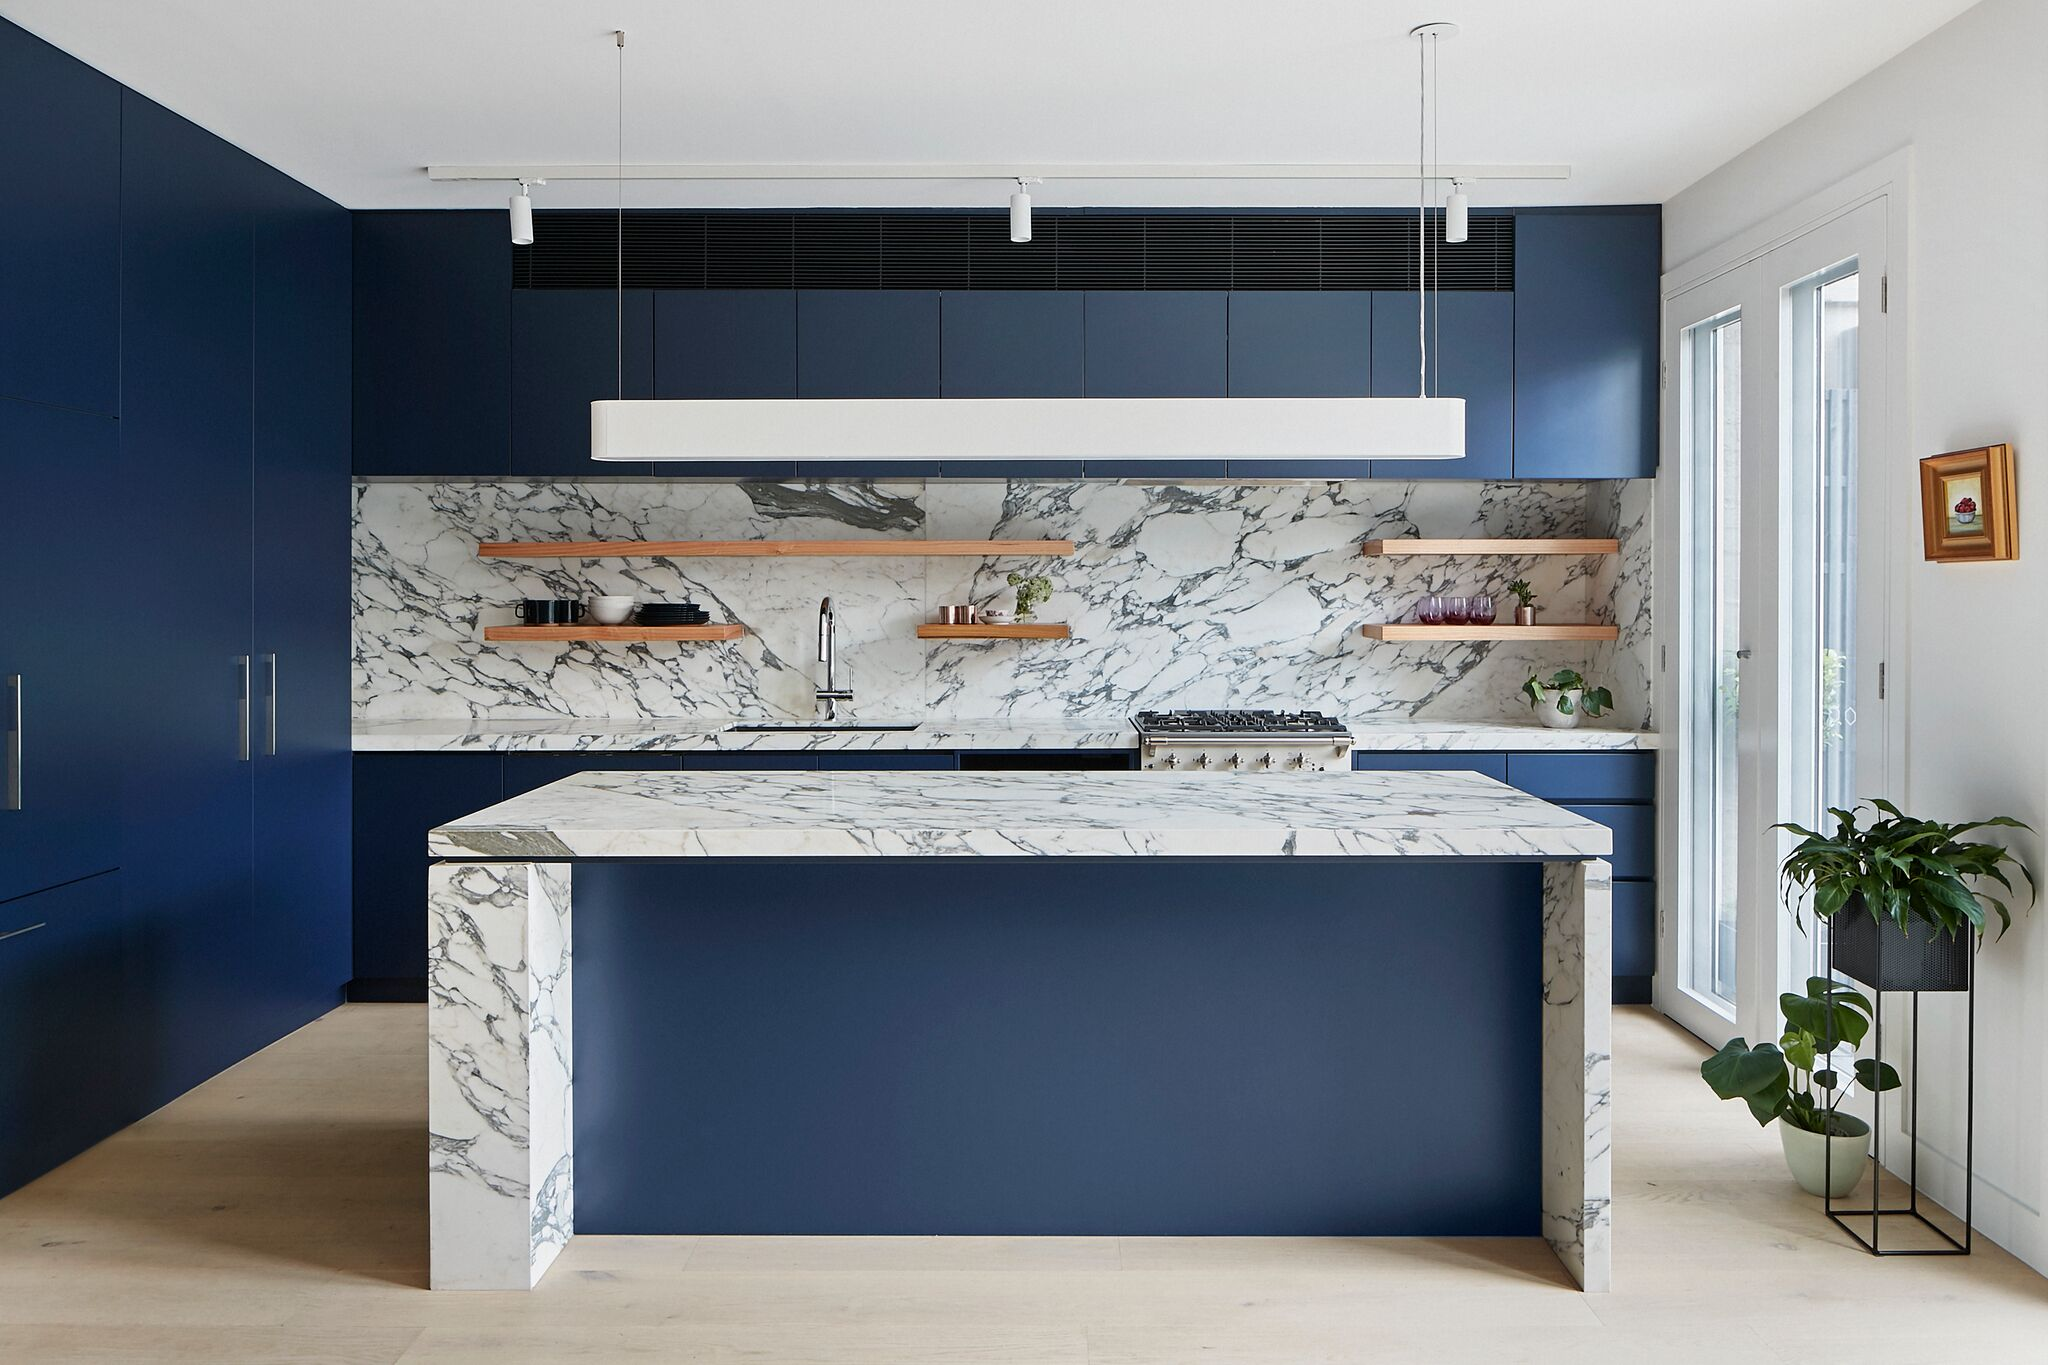 Gallery Of Blue Ivy House By Mcmahon And Nerlich Local Australian Architecture & Interior Design Malvern, Melbourne Image 2